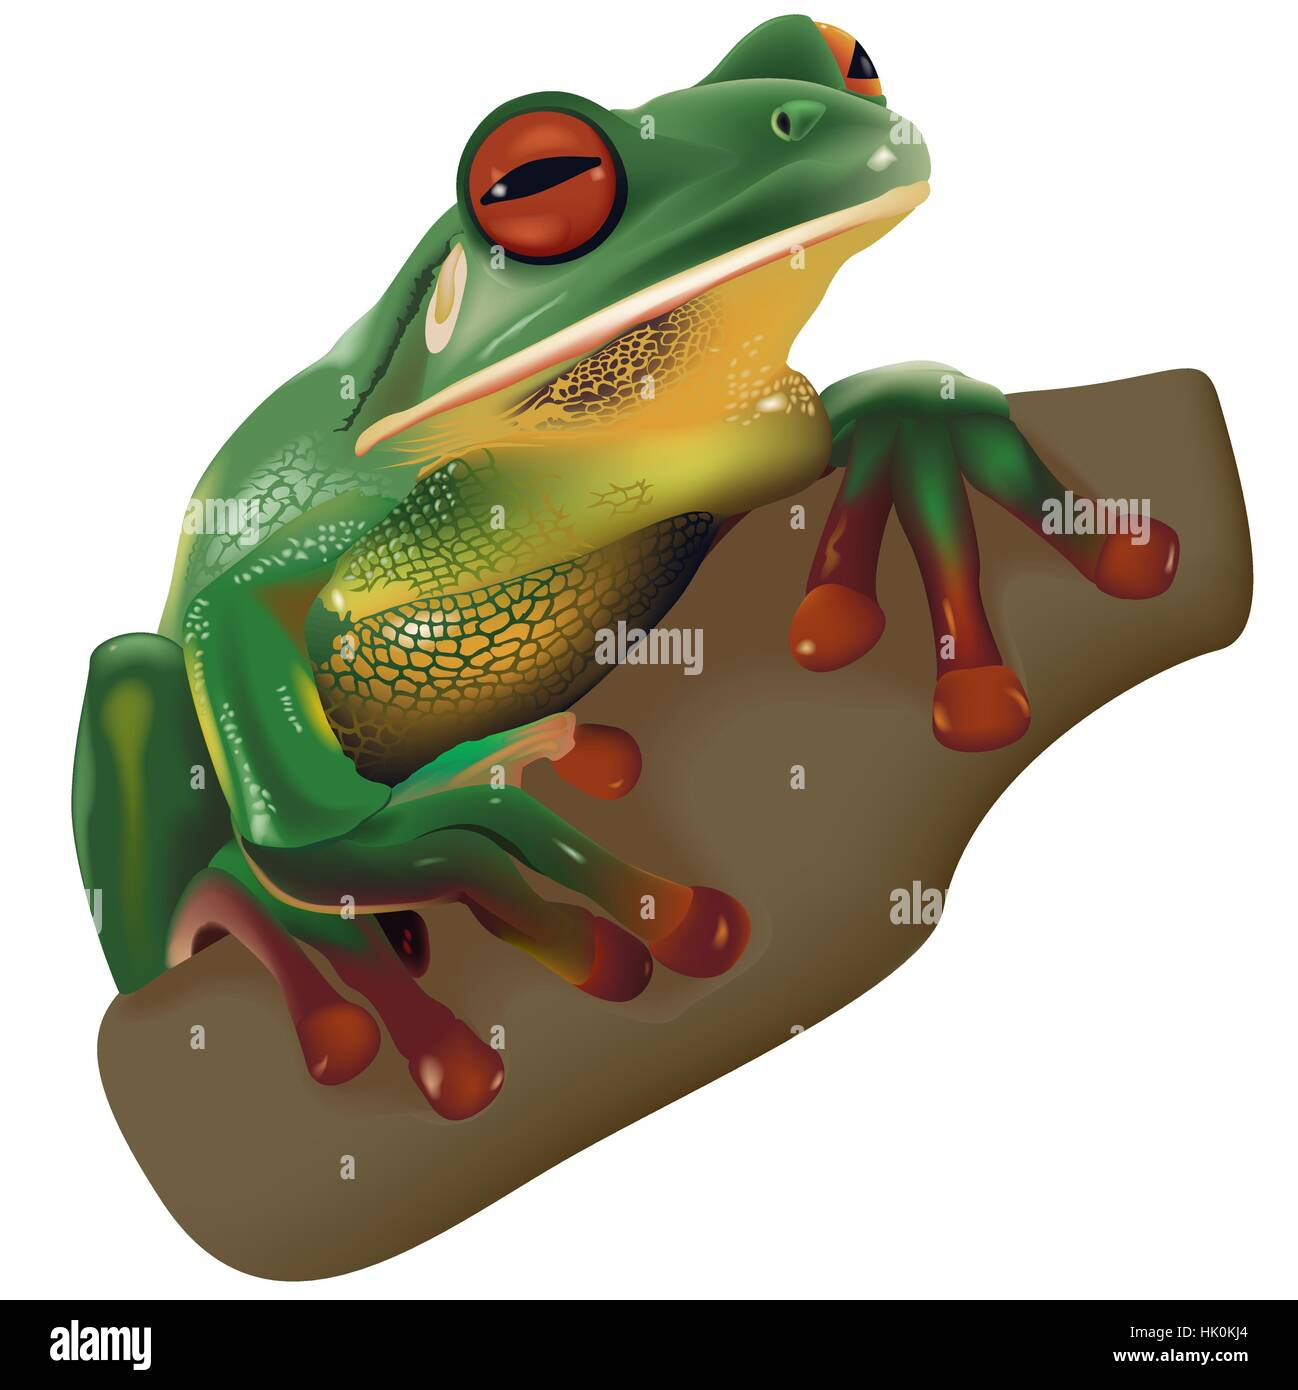 European Frog Stock Vector Images - Alamy